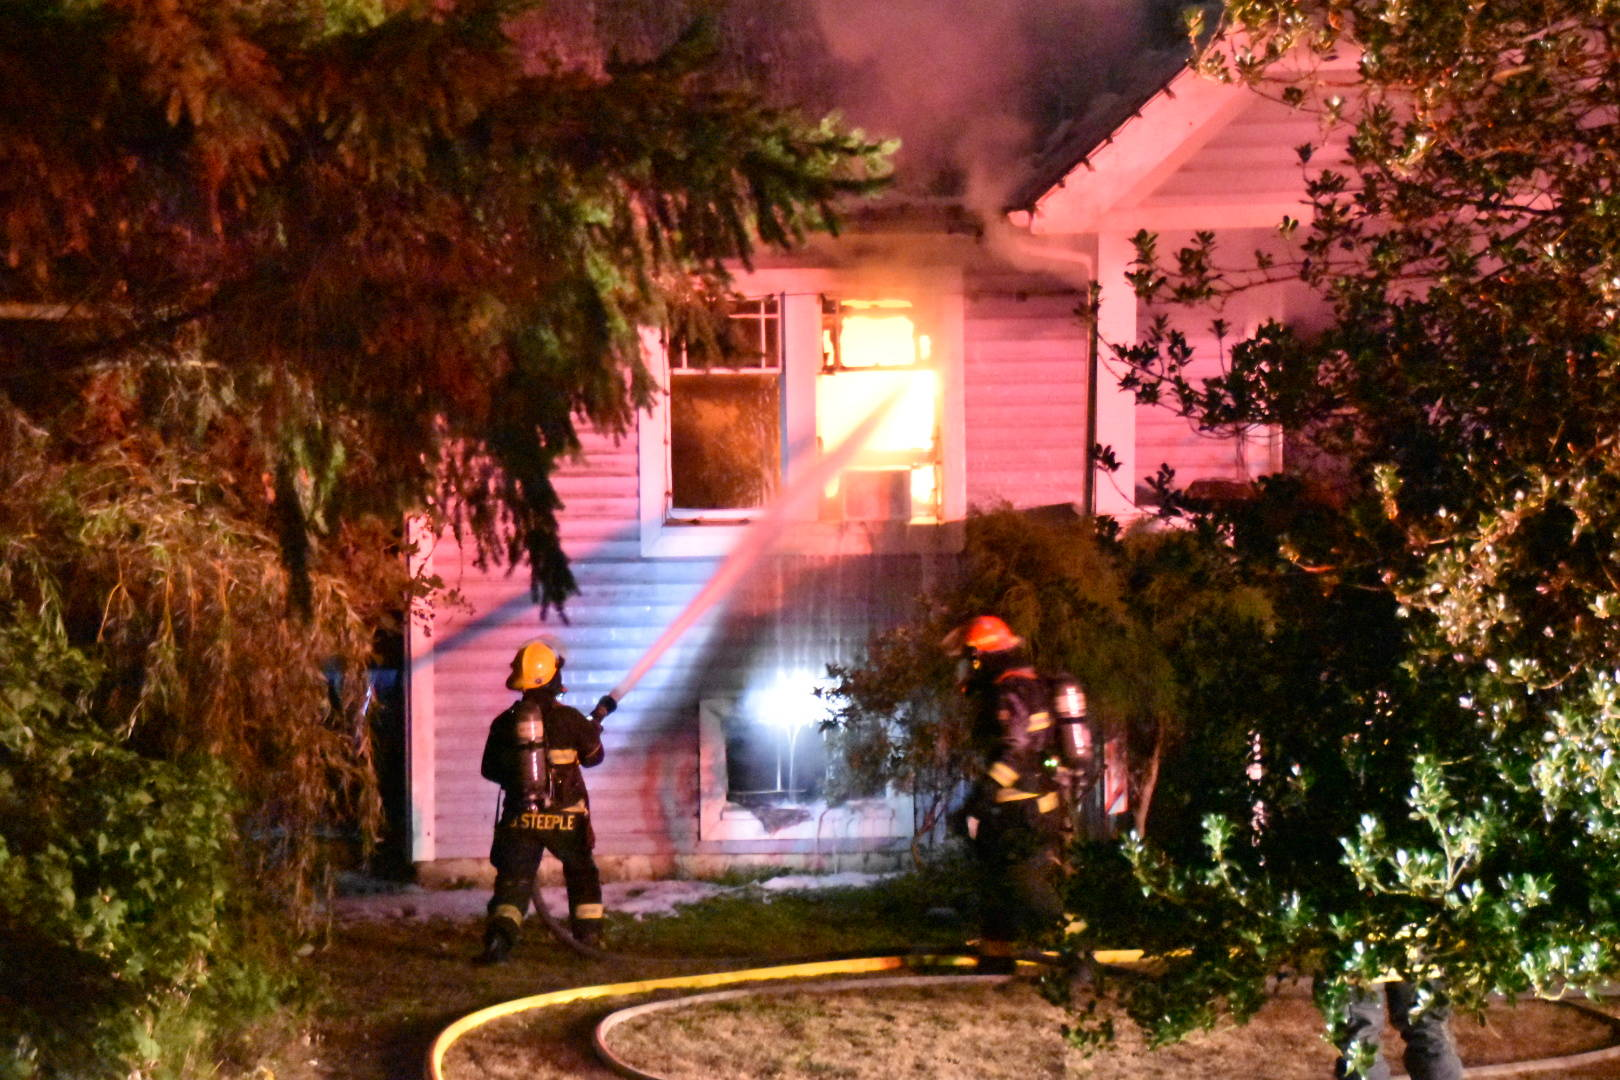 """About 30 Township of Langley firefighters were called to battle a house fire on a mobile home property at<tcxspan tcxhref=""""tel:2339072"""" title=""""Call 23390 72 with 3CX Click to Call"""" style=""""background-color: rgb(255, 255, 255); font-family: Georgia, Times, serif, """"Lucida Grande"""", Tahoma, Arial, Verdana, sans-serif; font-size: 16px;""""> 23390 72 </tcxspan>Ave. around 10 p.m. Wednesday night, Aug. 25. 2021. (Curtis Kreklau/Special to Langley Advance Times)"""